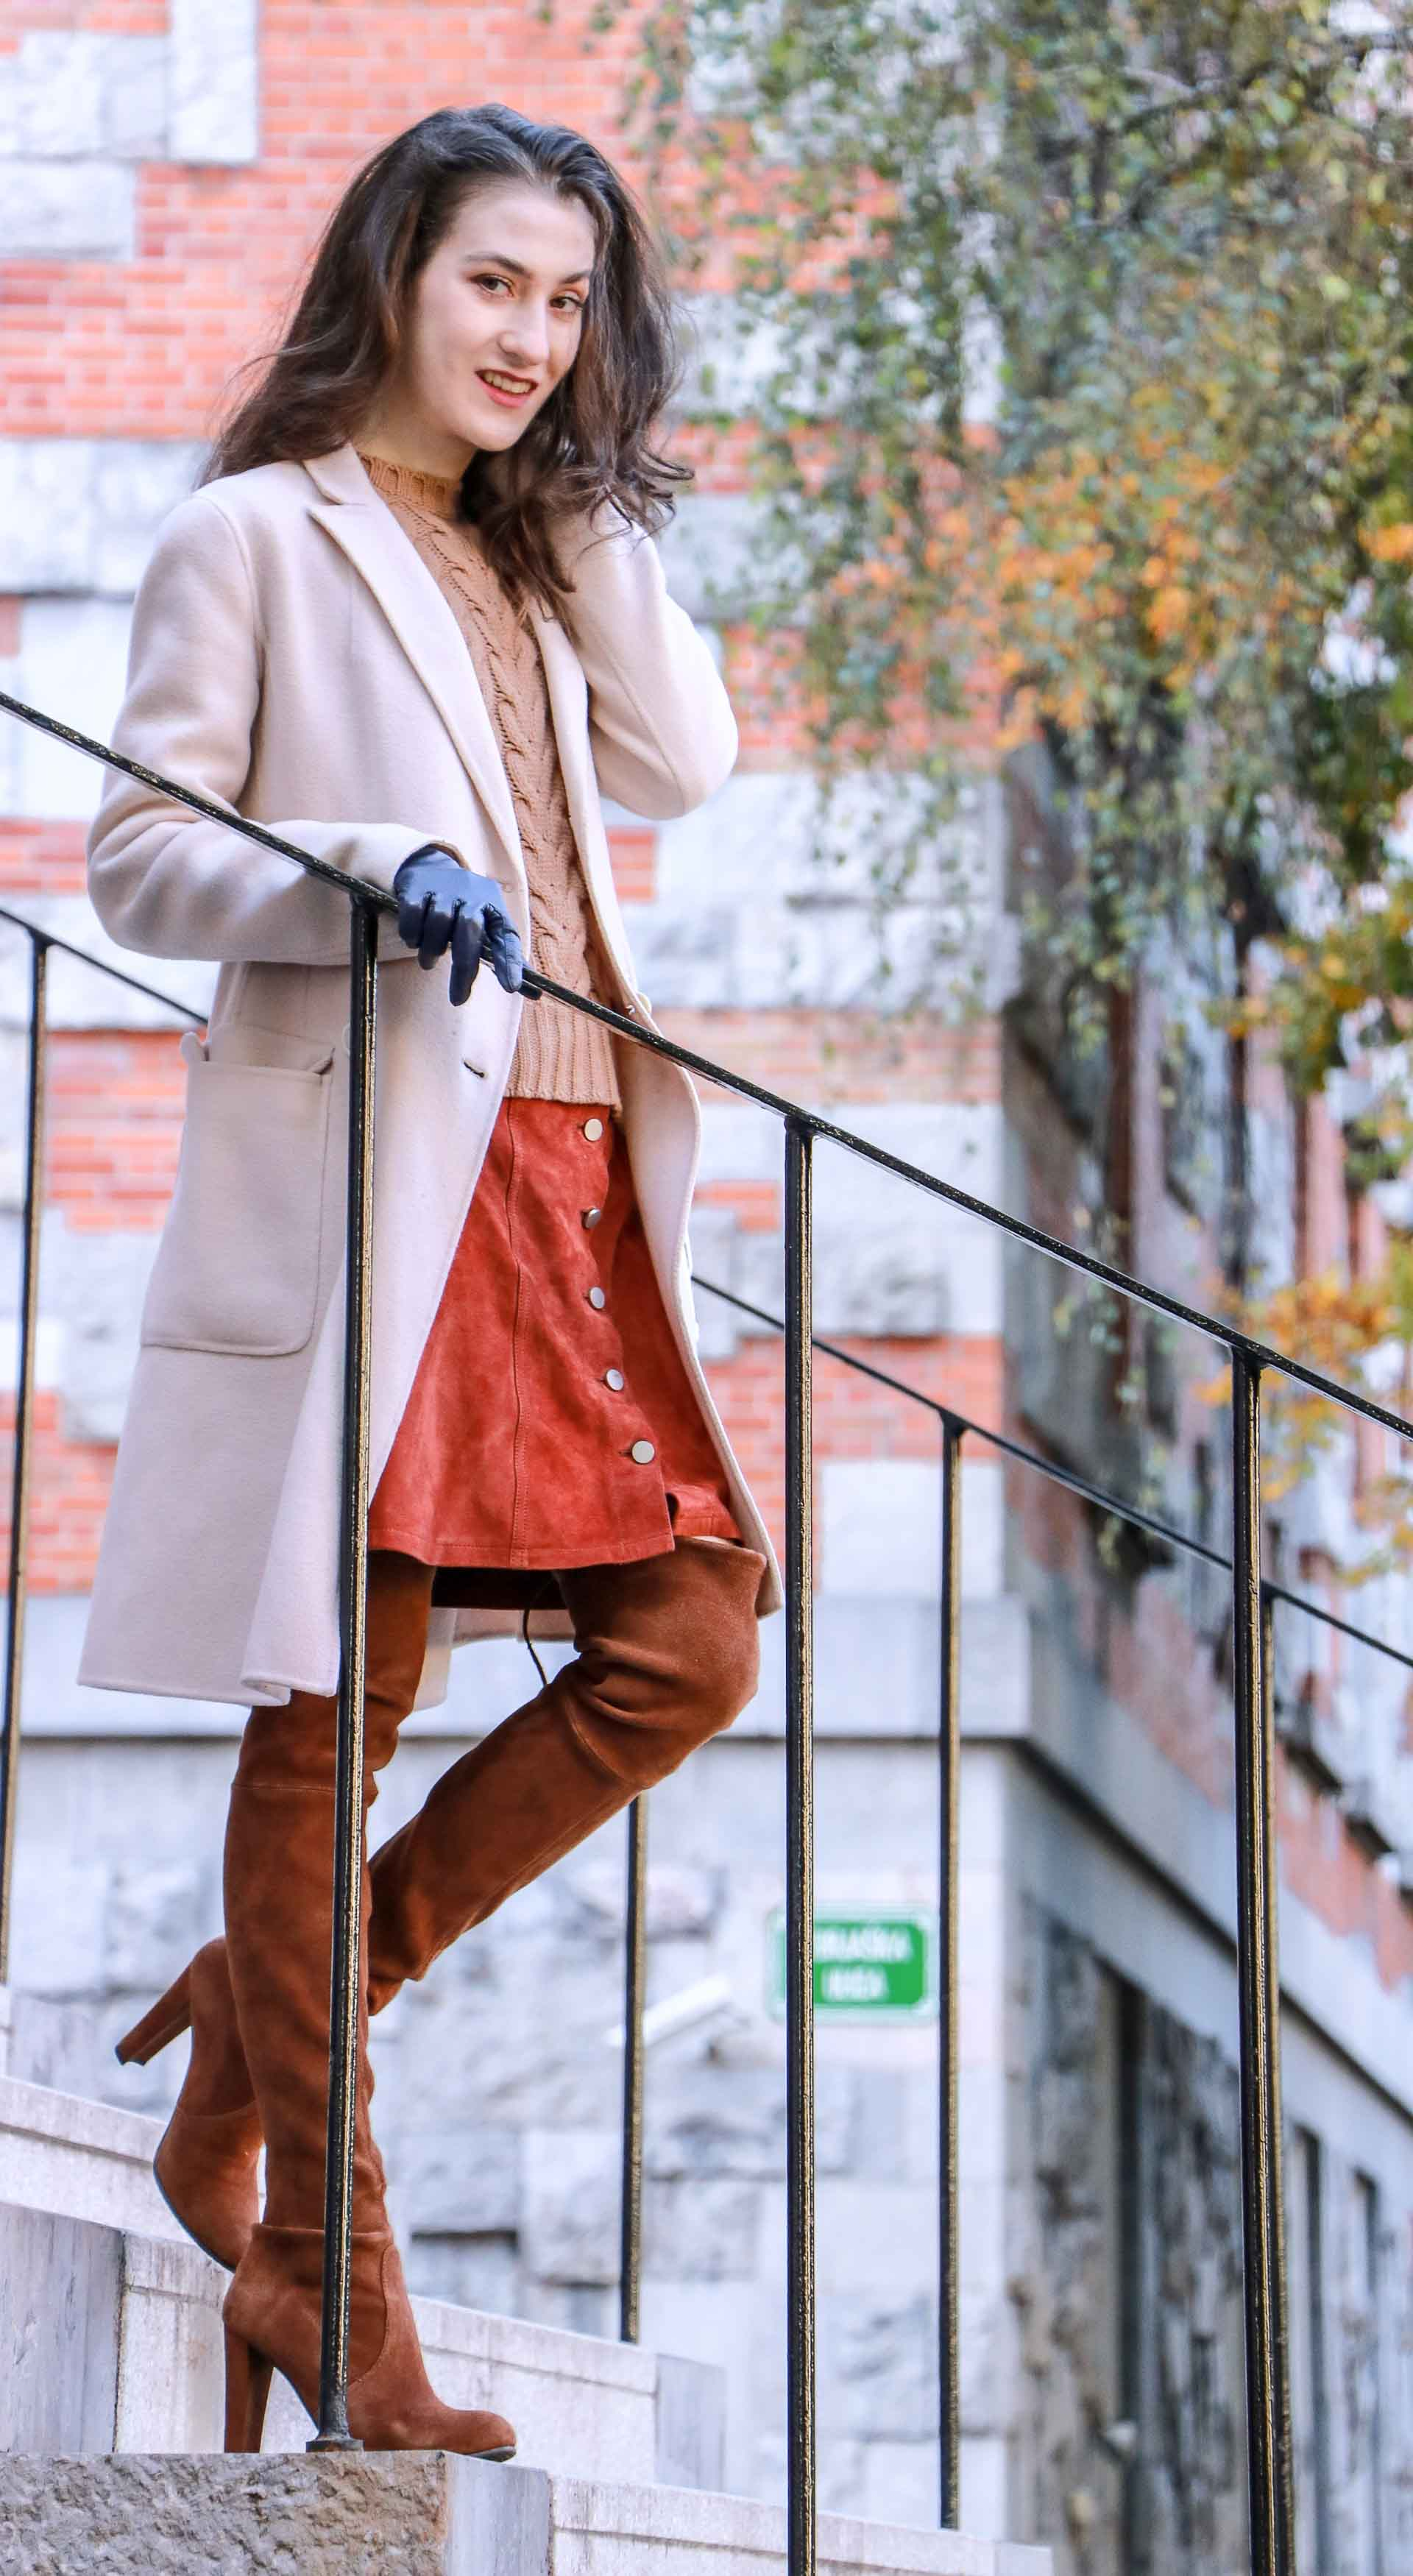 Beautiful Slovenian Fashion Blogger Veronika Lipar of Brunette from Wall wearing Max Mara camel cable knit sweater, front button brown suede skirt, Stuart Weitzman brown over the knee boots, Max Mara coat standing on the stairs